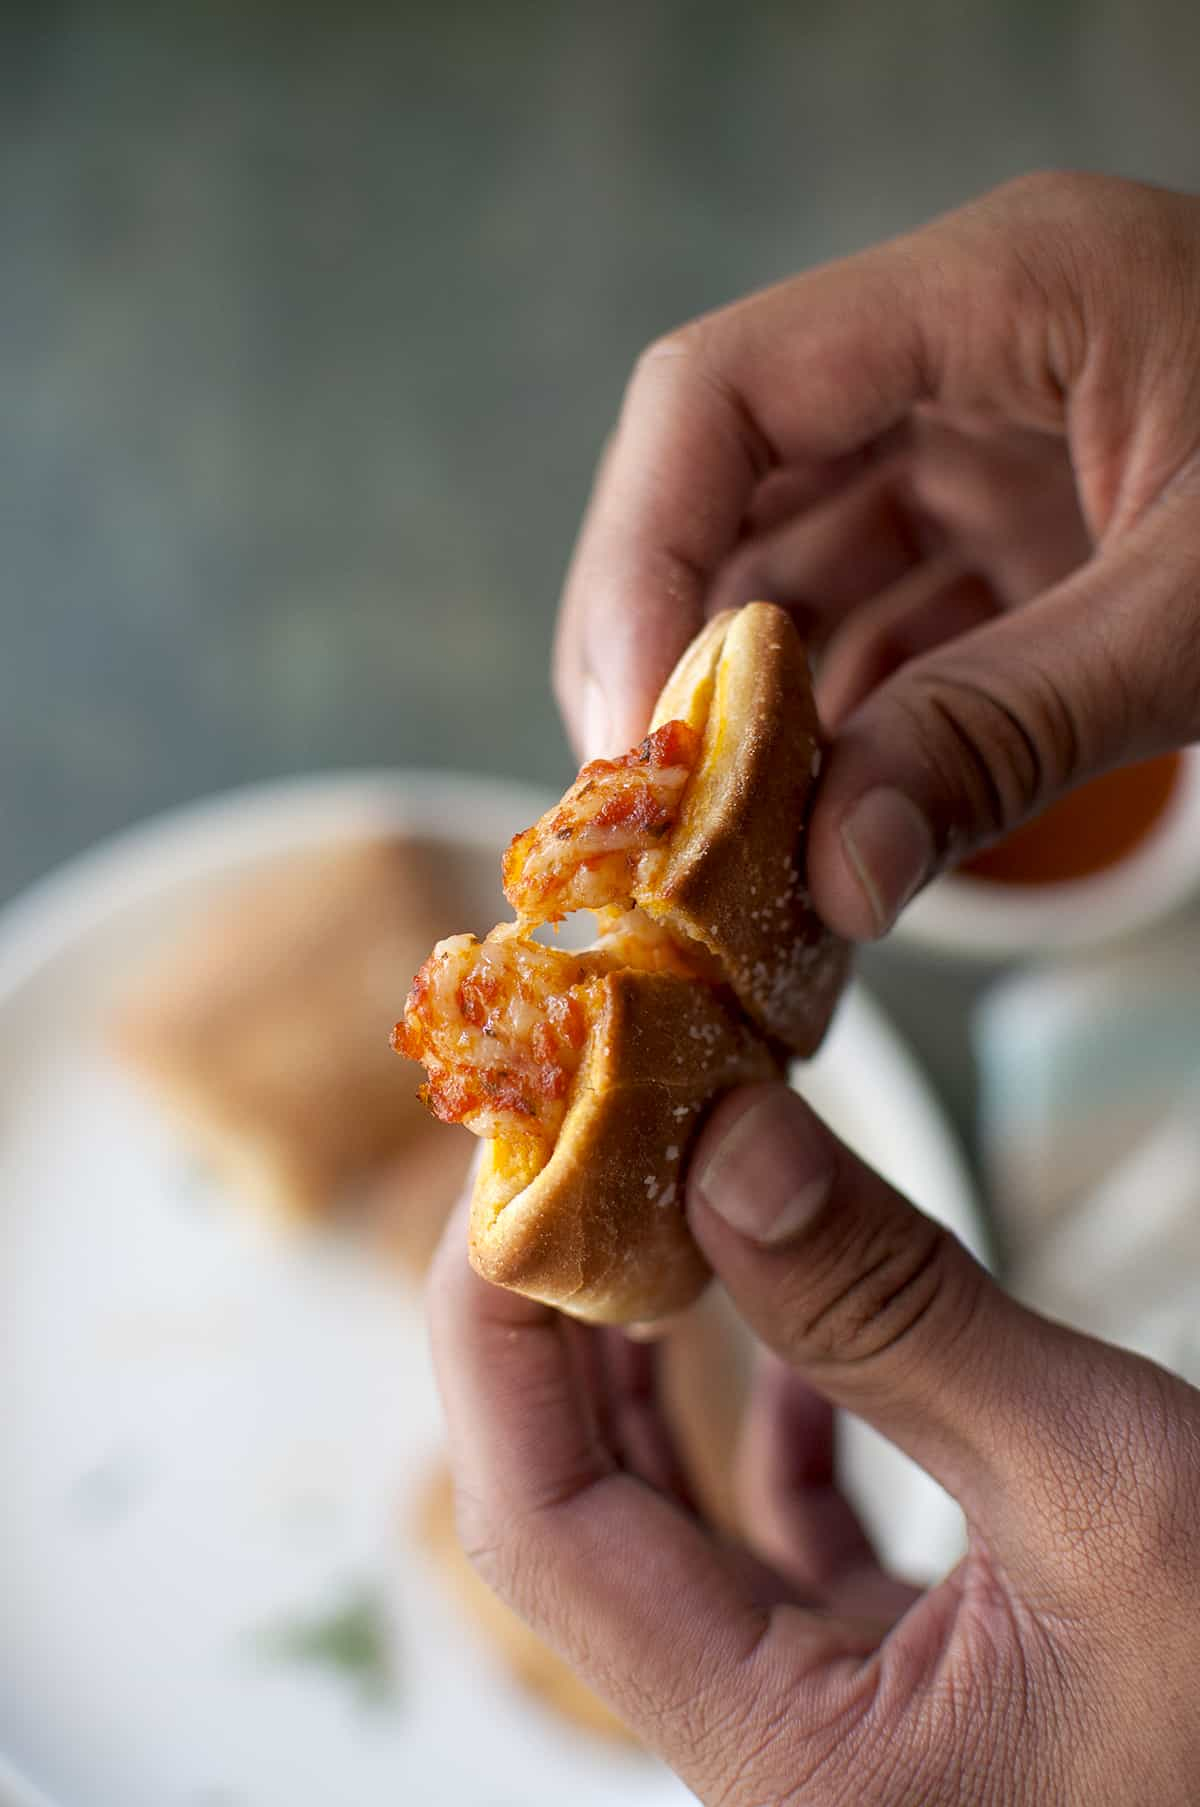 Hands holding cheesy pizza poppers